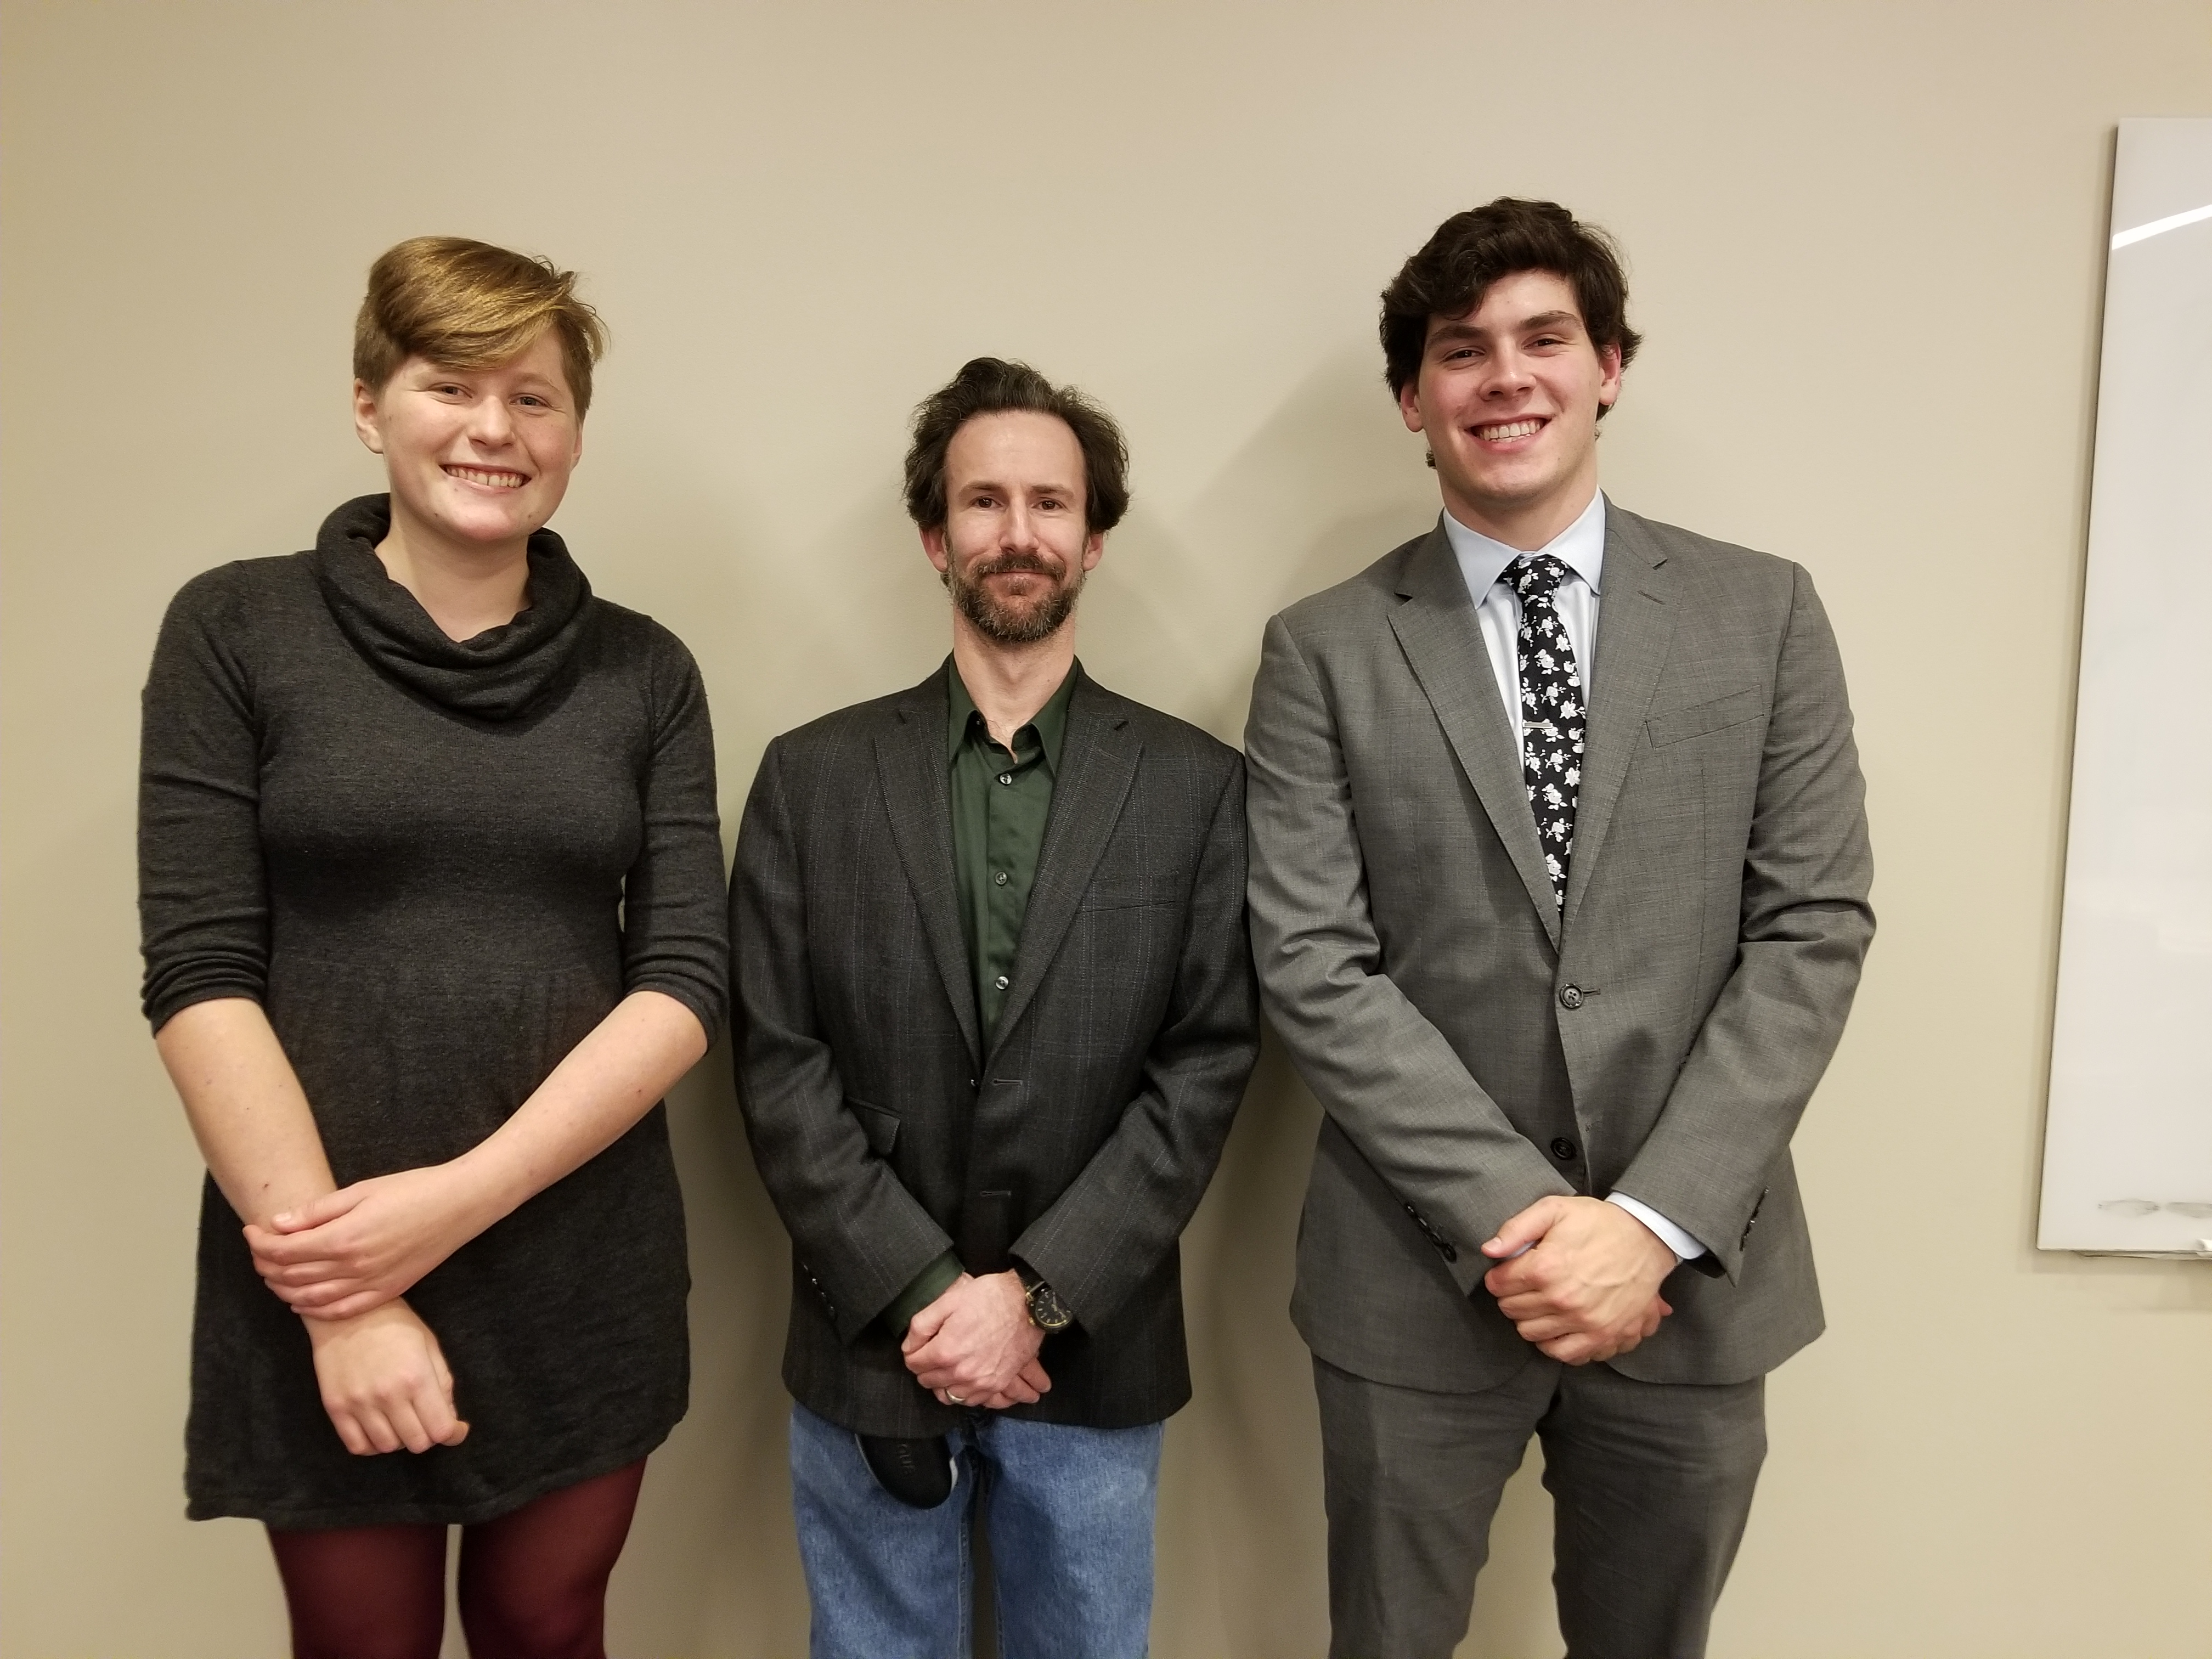 Professor Justin Buchler with his advisees Gillian Prater-Lee and Alexander Quinn